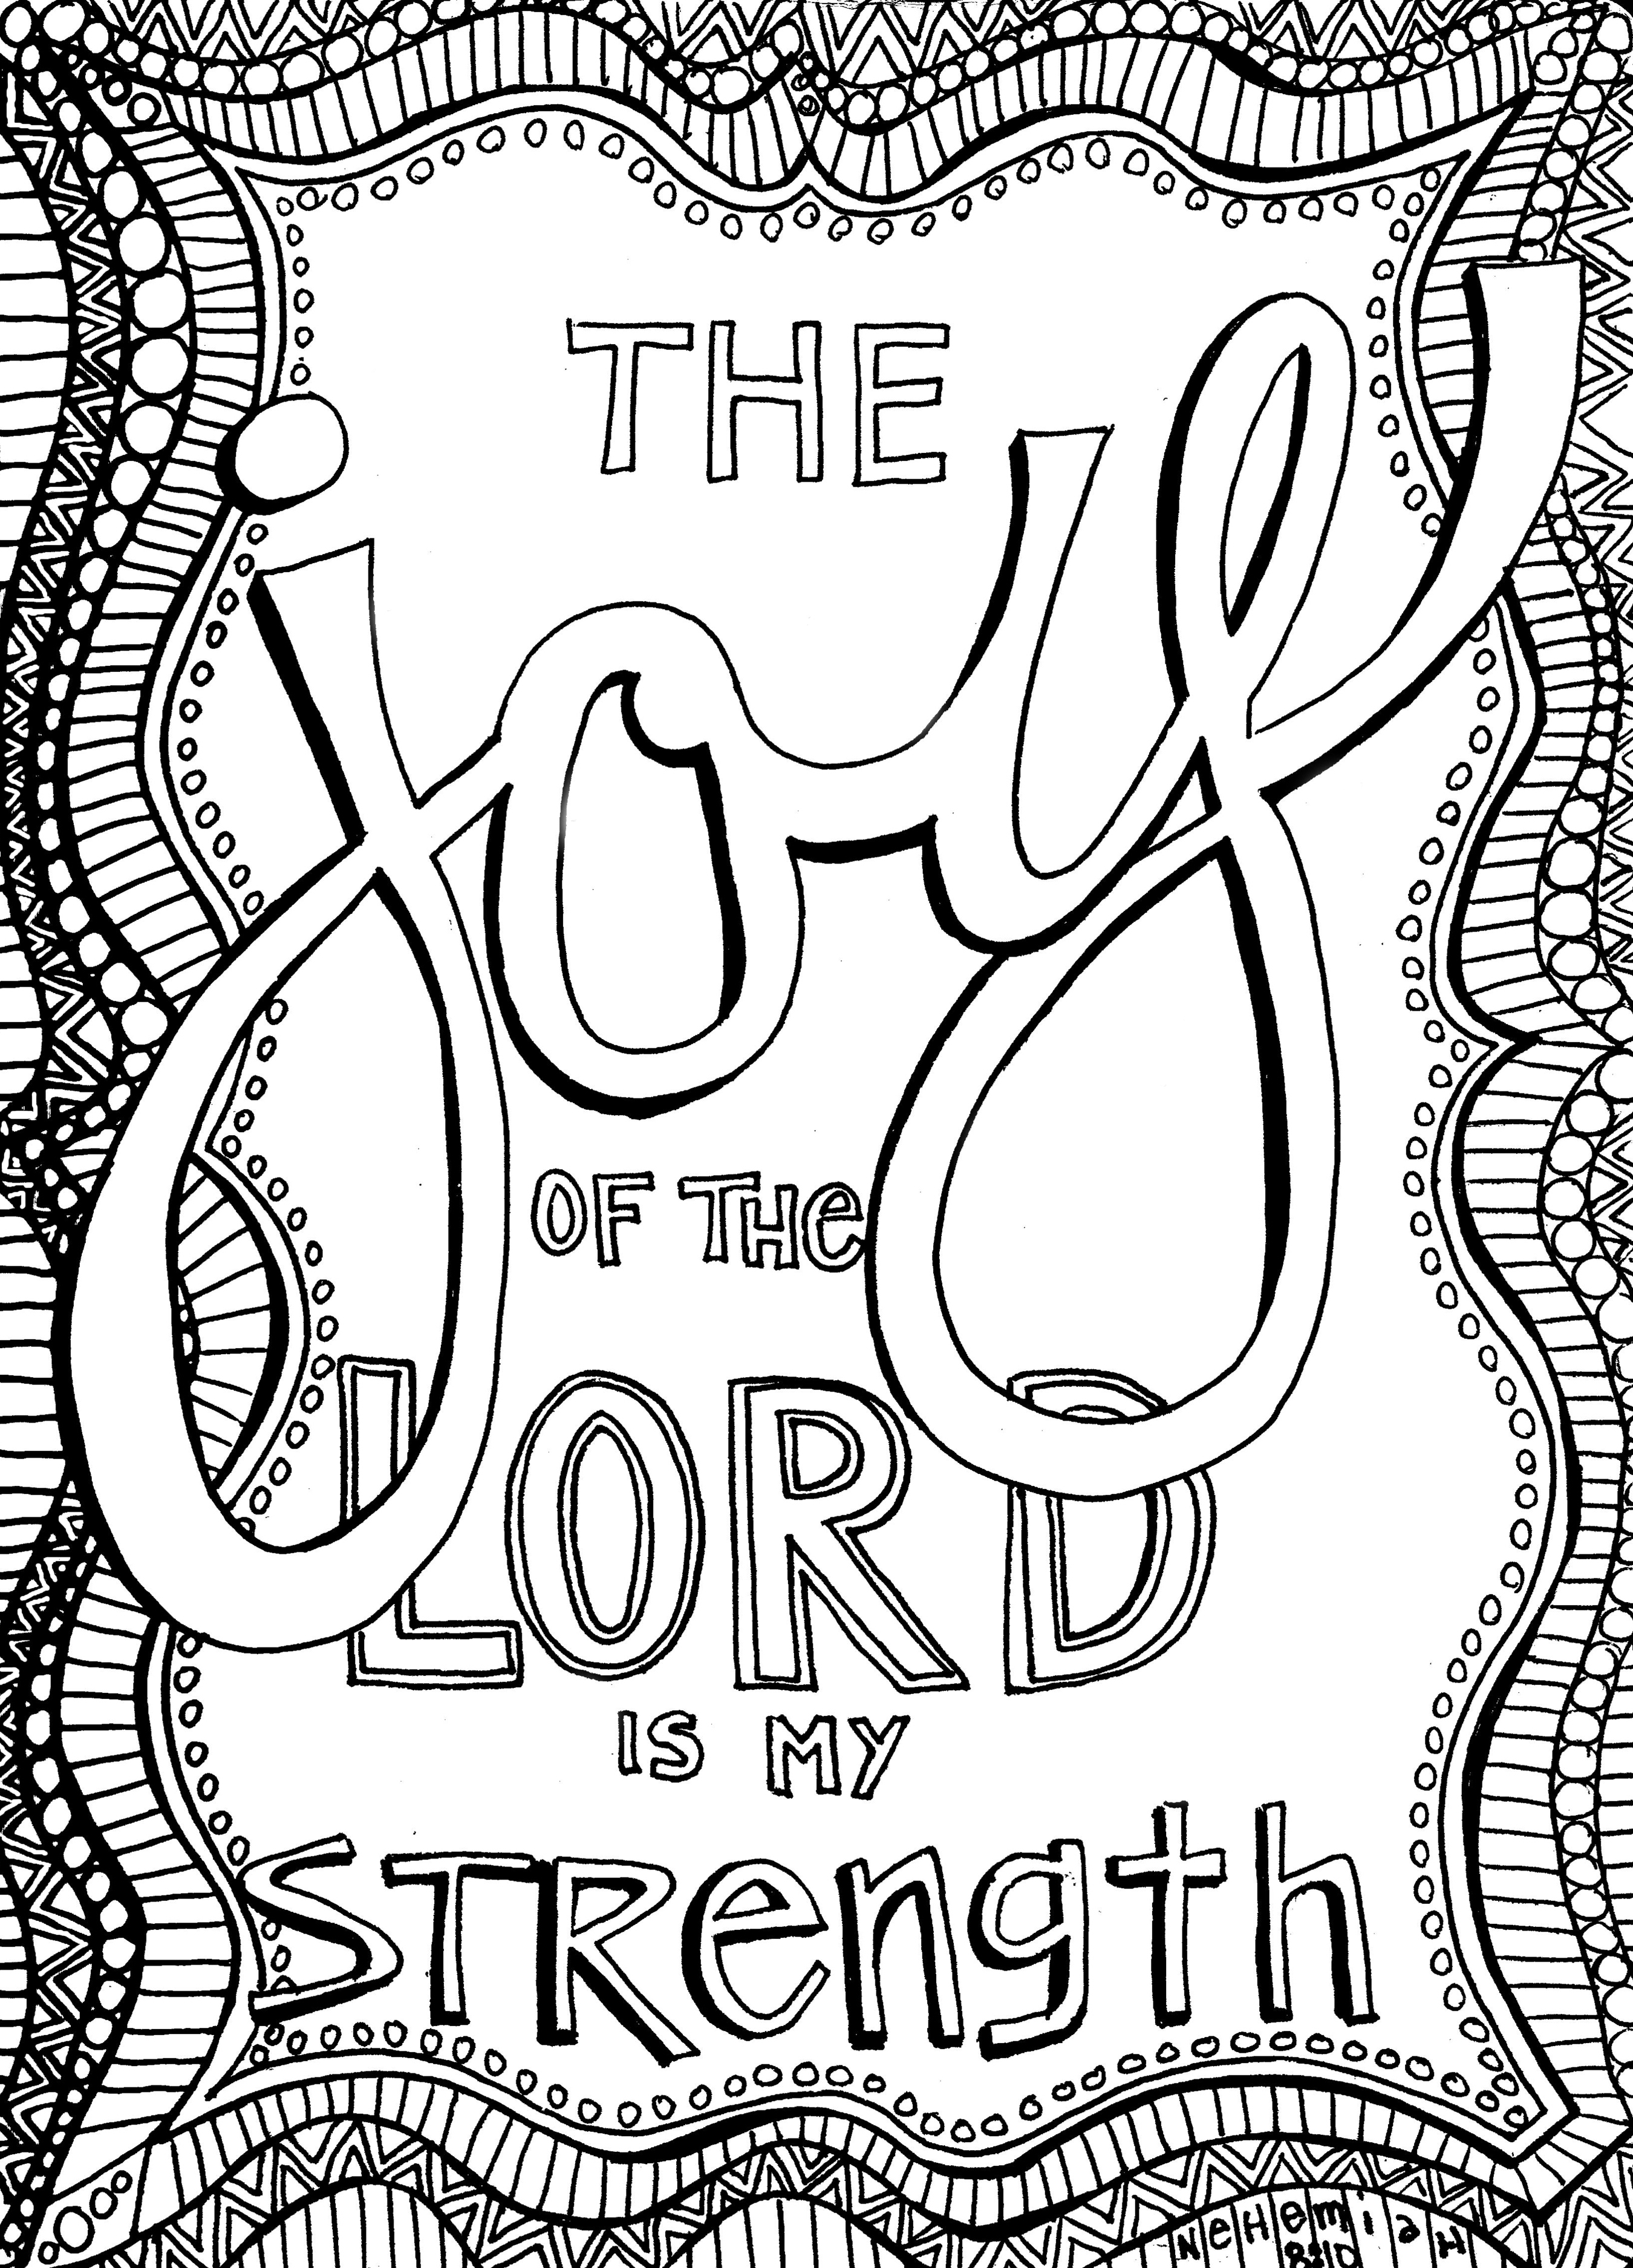 Free Christian Coloring Pages For Adults - Roundup - Joditt Designs - Free Printable Bible Coloring Pages With Verses